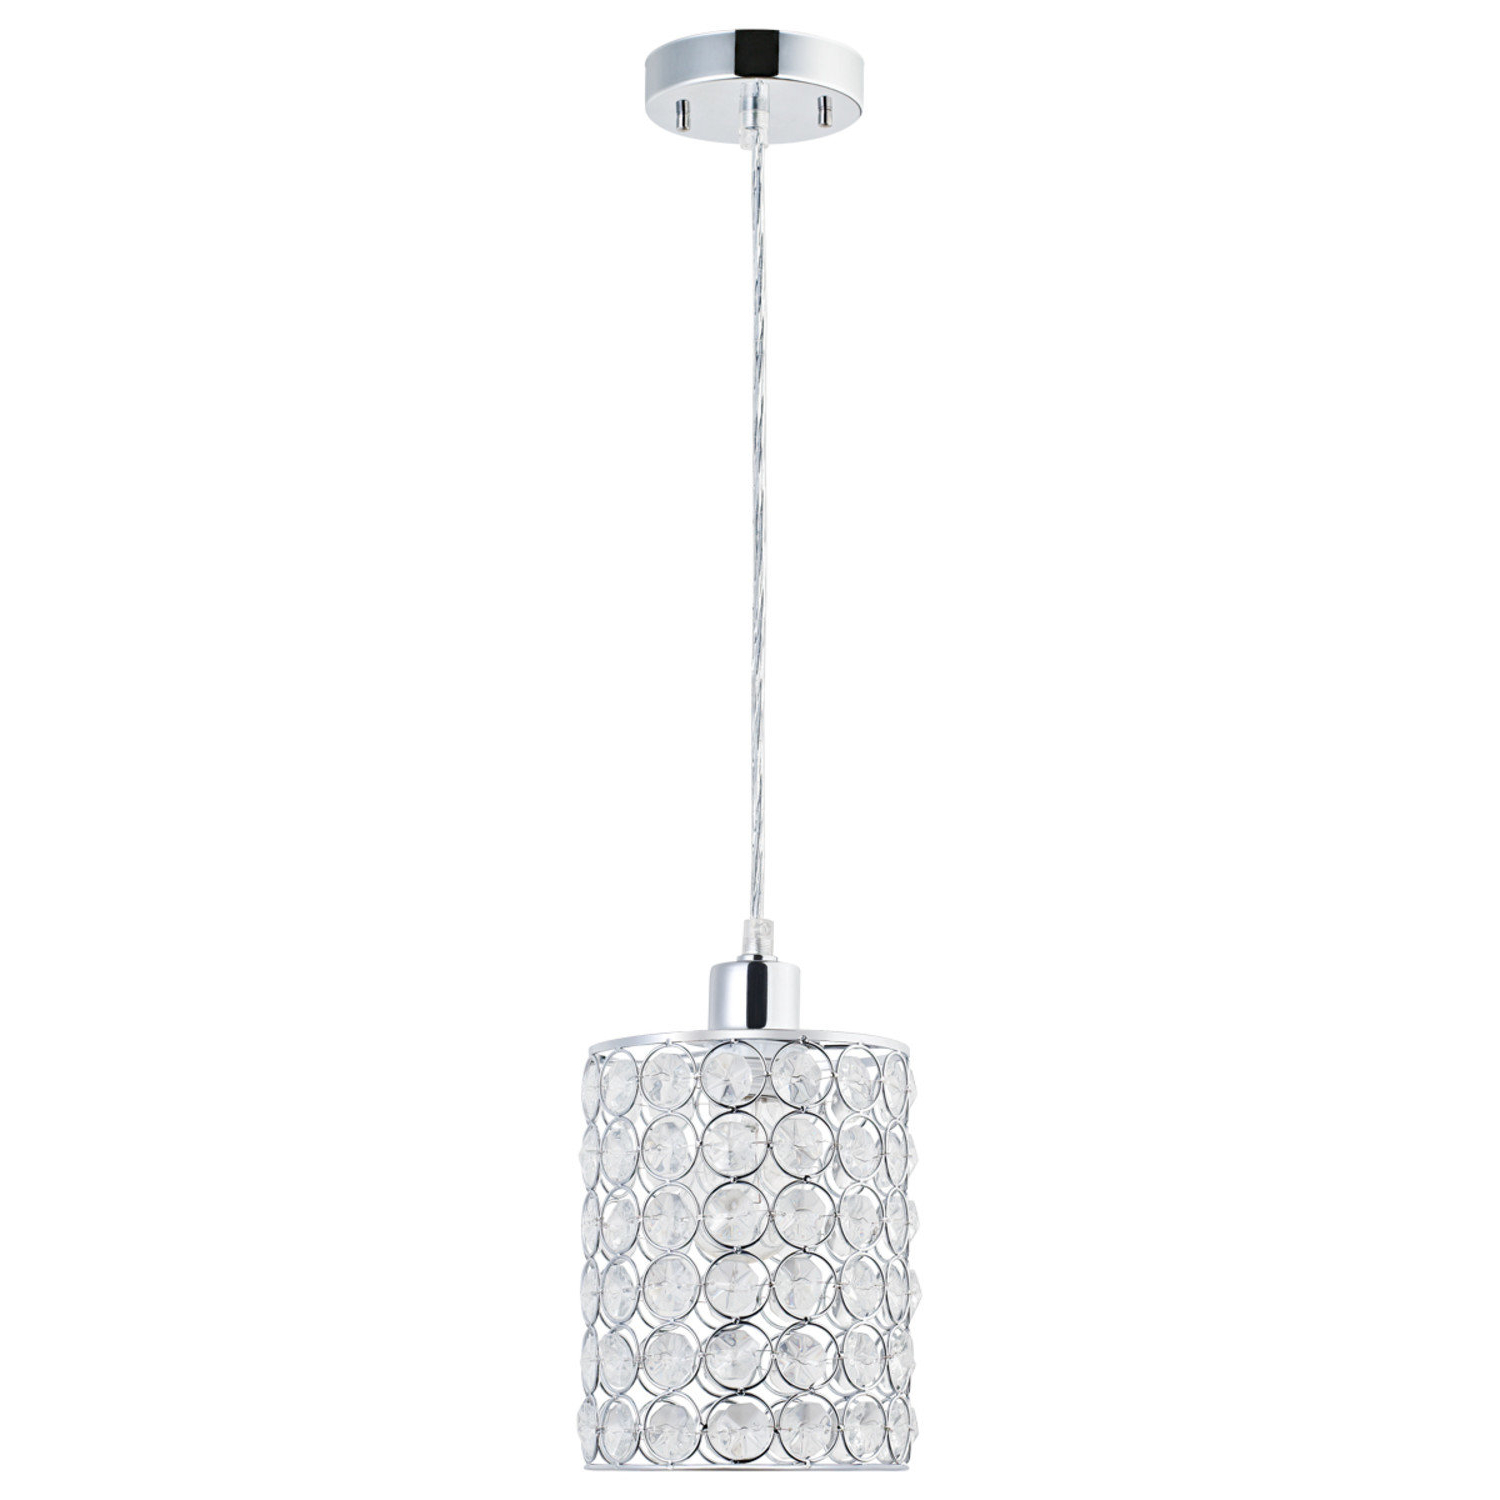 Hurst 1 Light Single Cylinder Pendant Throughout Fashionable Fennia 1 Light Single Cylinder Pendants (Gallery 11 of 25)